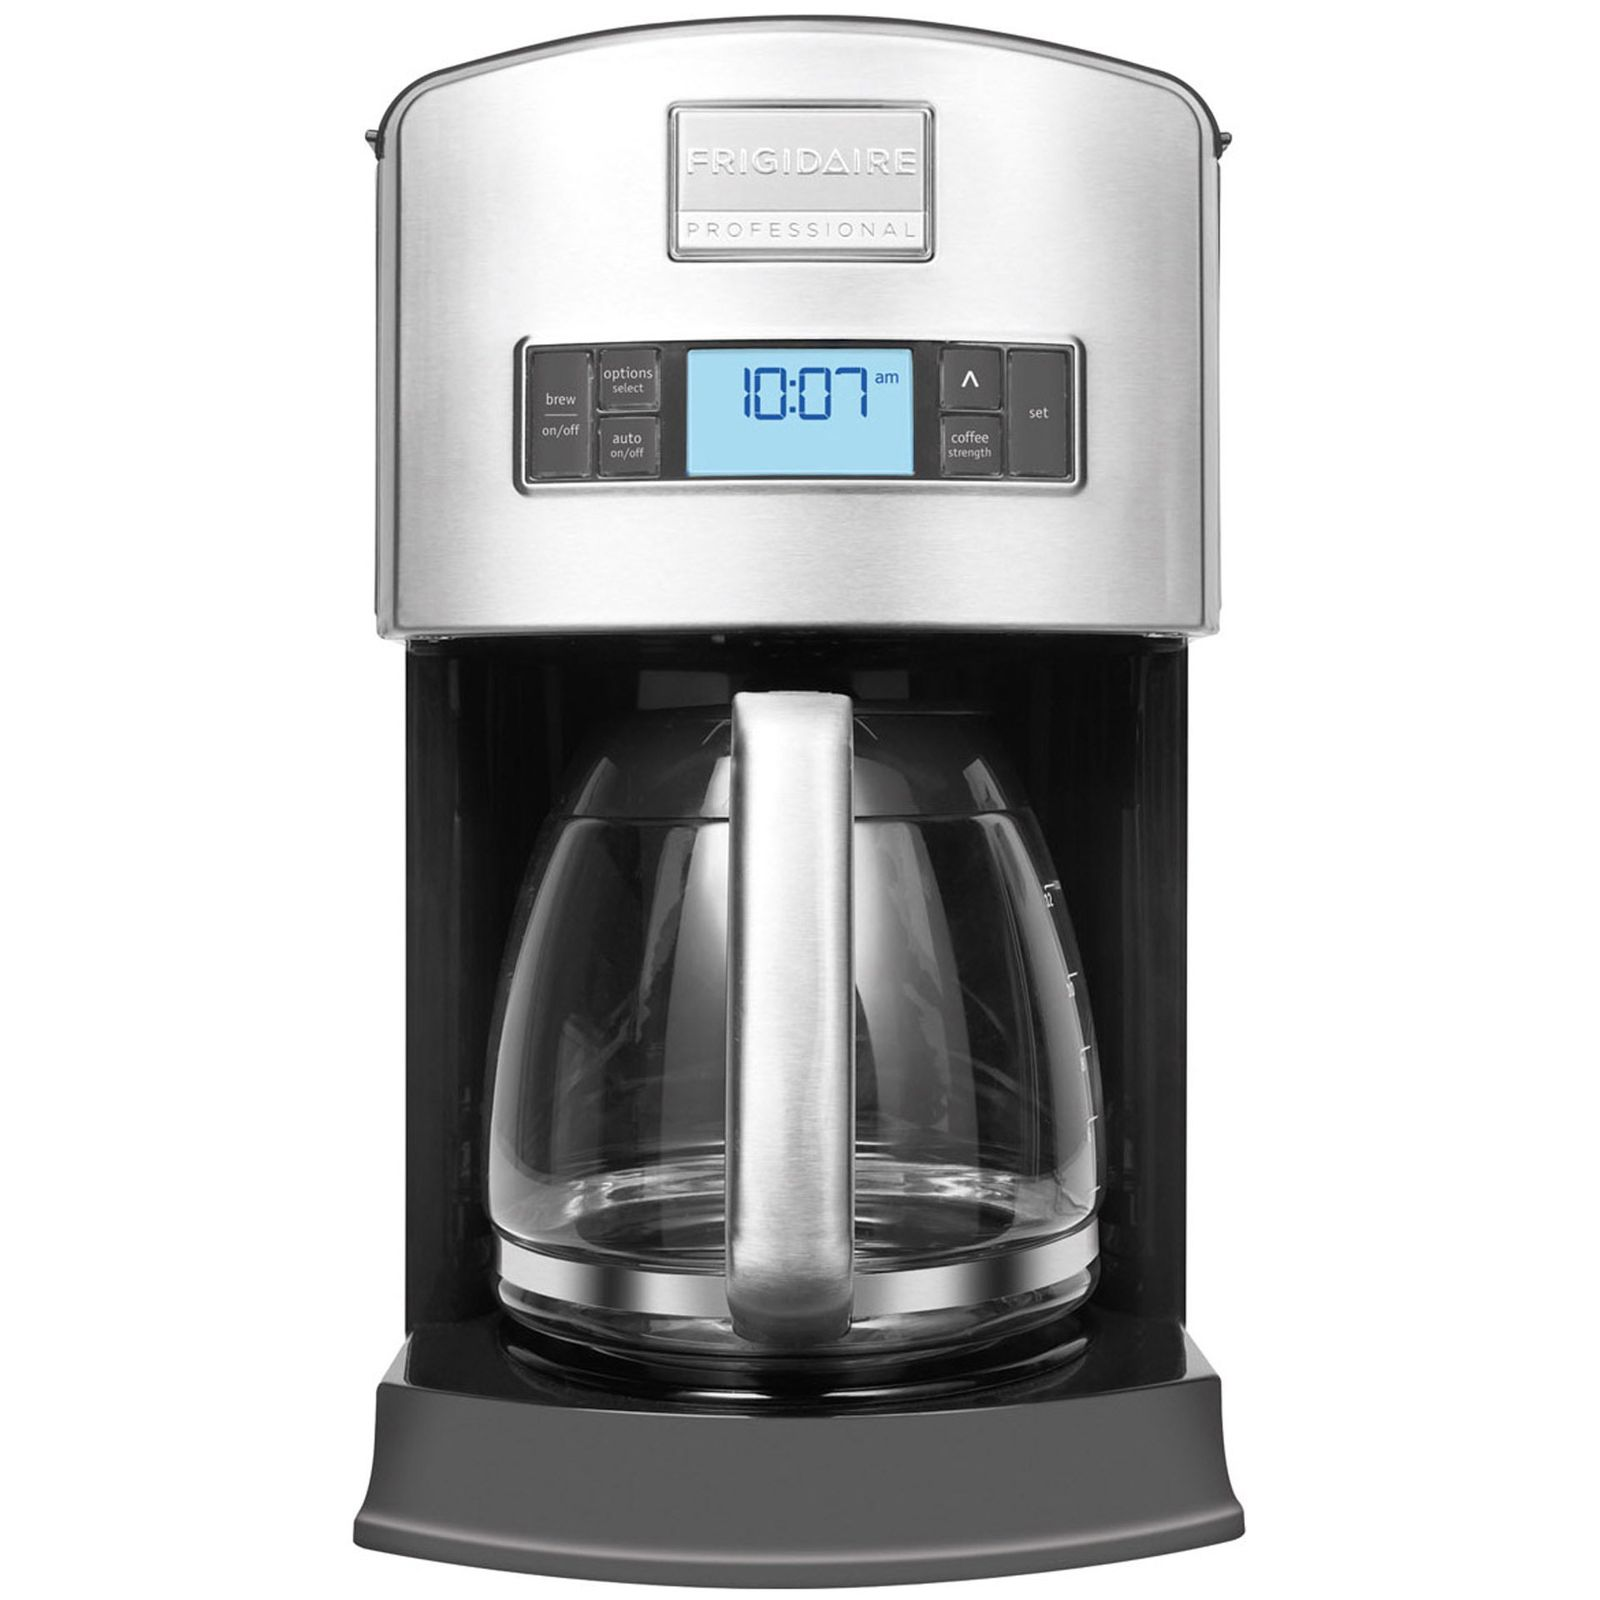 One Cup Drip Coffee Maker Reviews : Frigidaire Professional 12-Cup Drip Coffee Maker #FPDC12D7MS Review